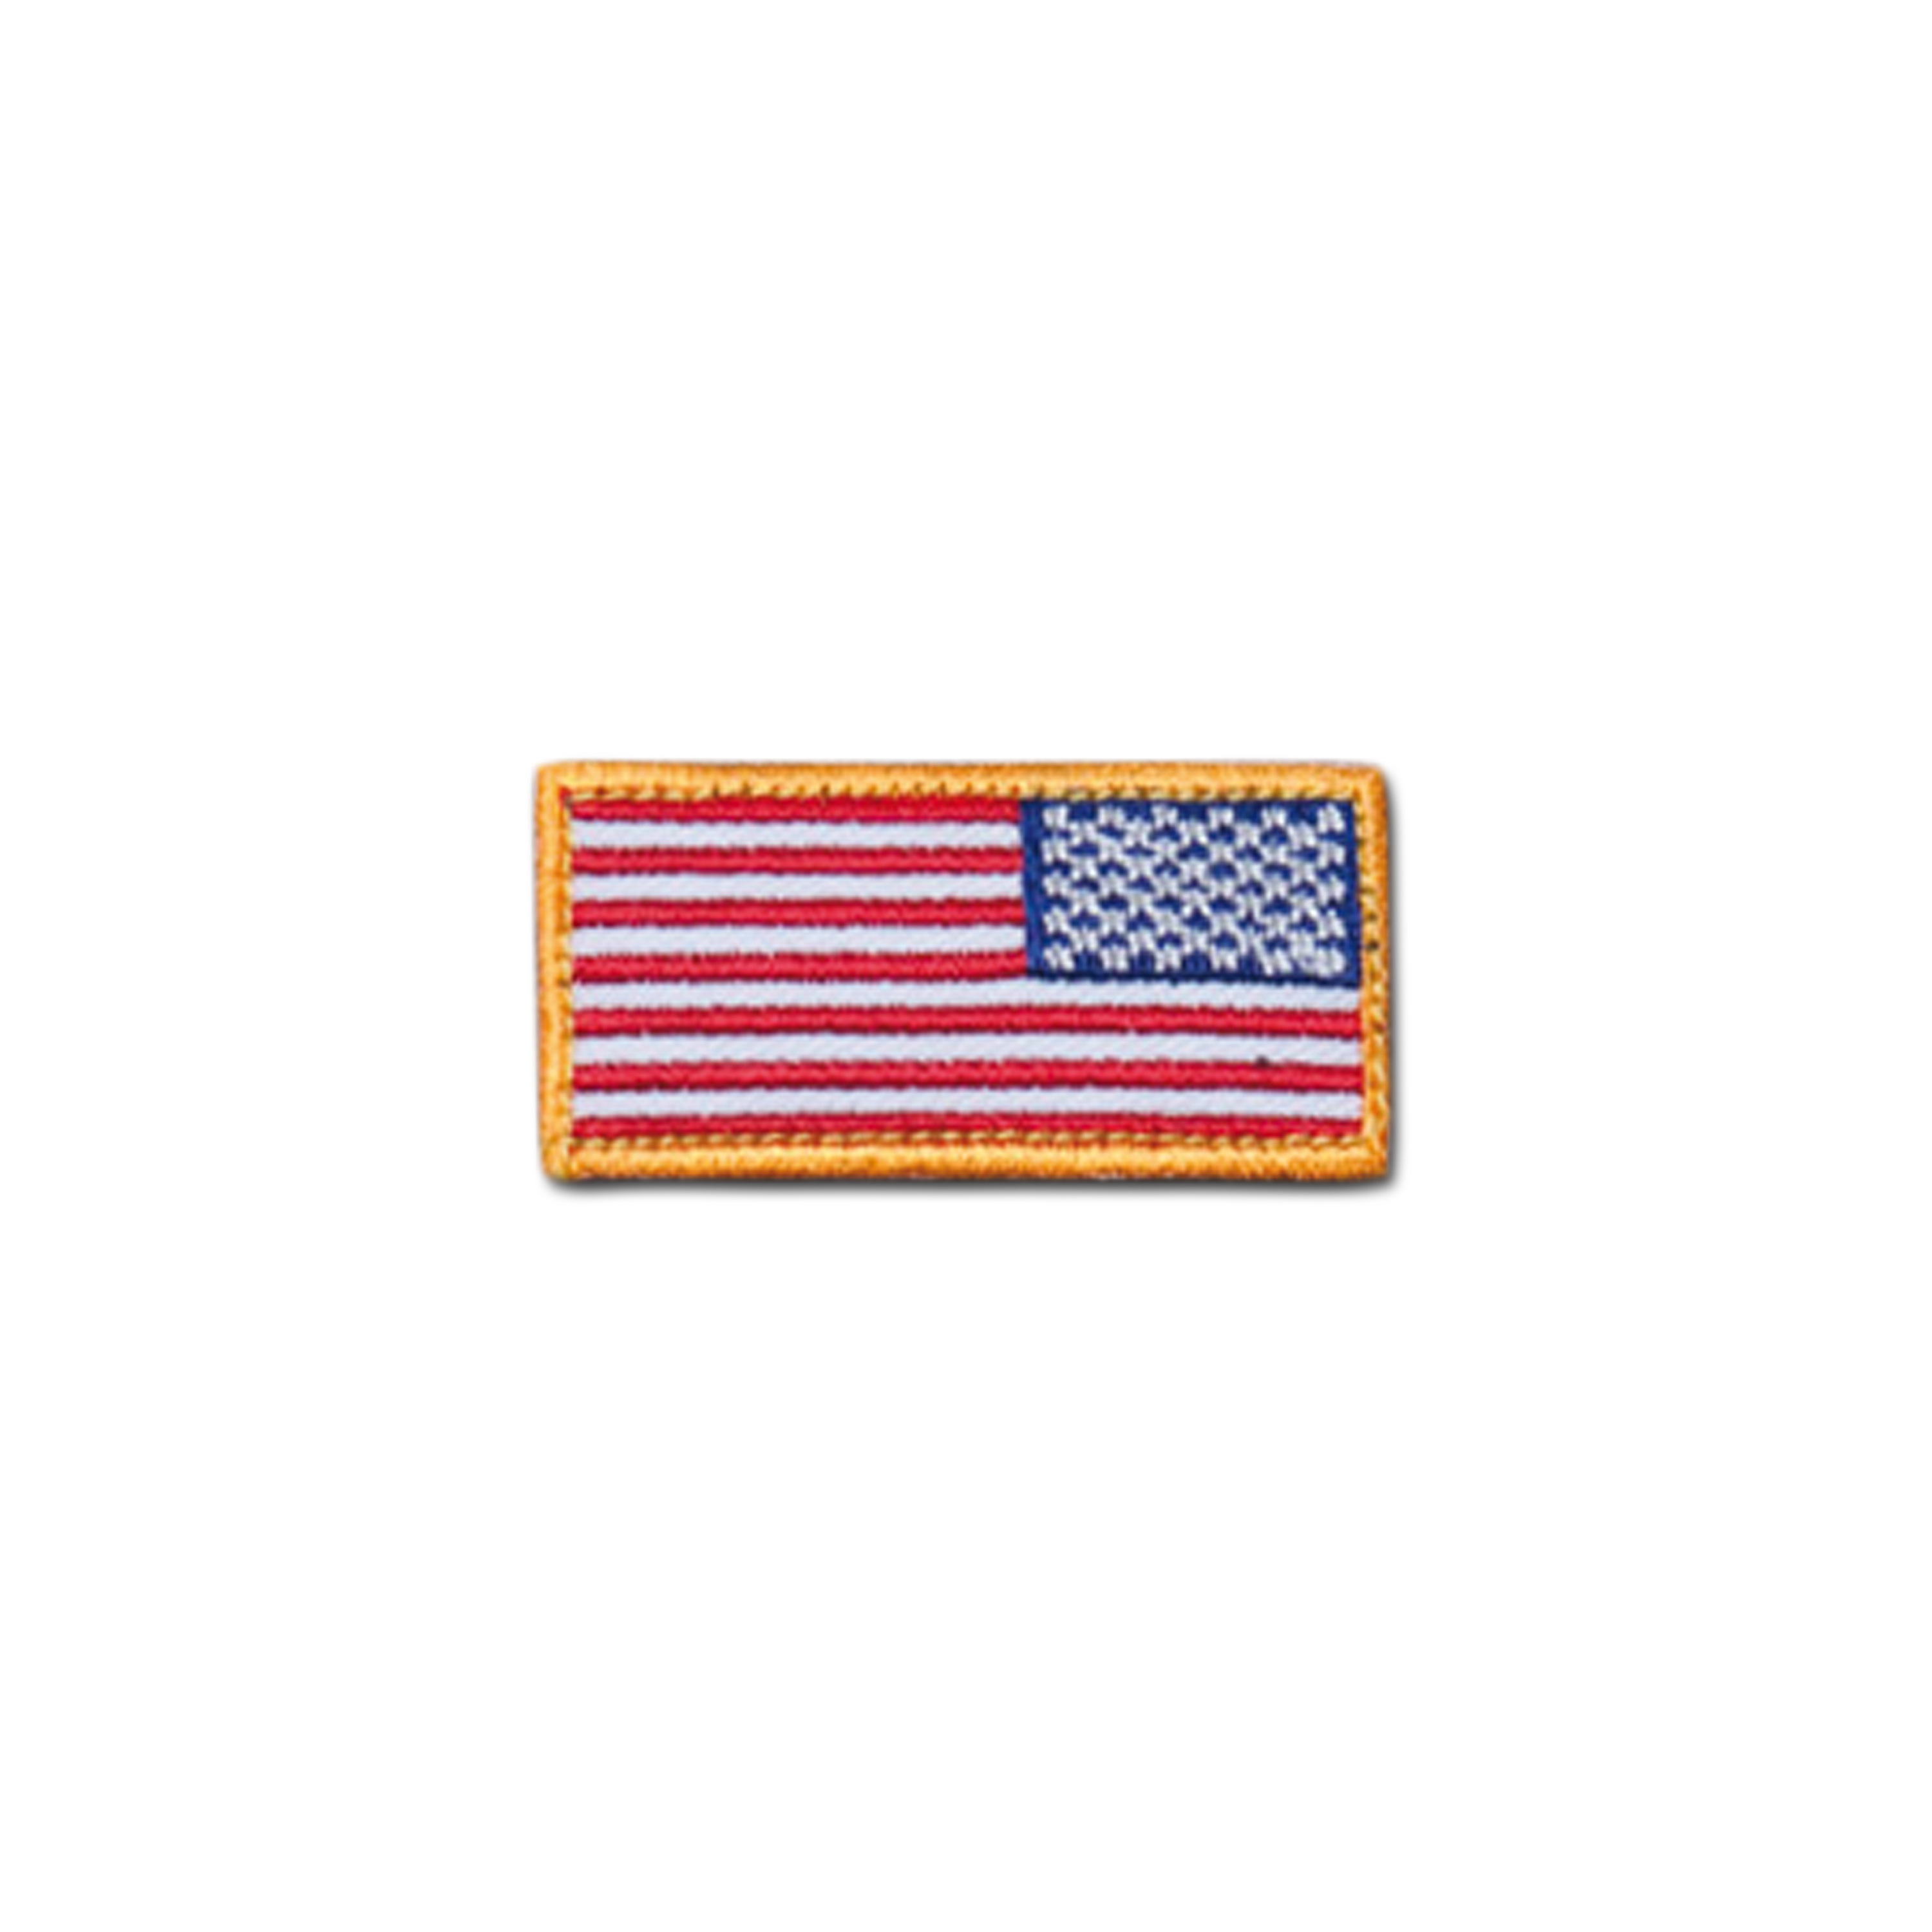 MilSpecMonkey Patch US Flag Mini Rev full color